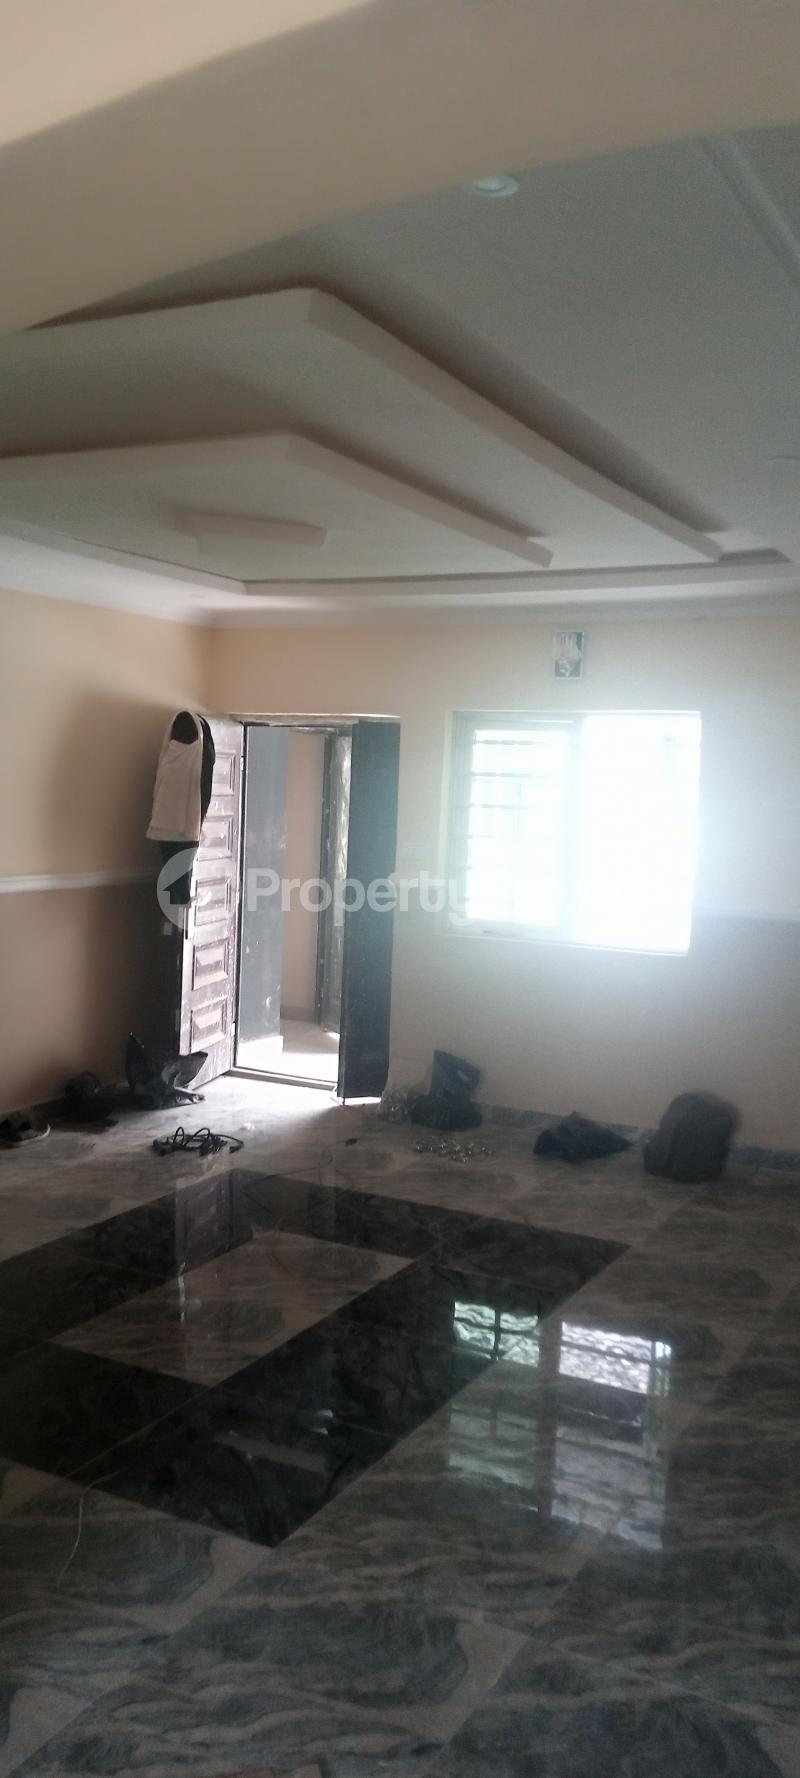 3 bedroom Flat / Apartment for rent A close Oke-Ira Ogba Lagos - 3